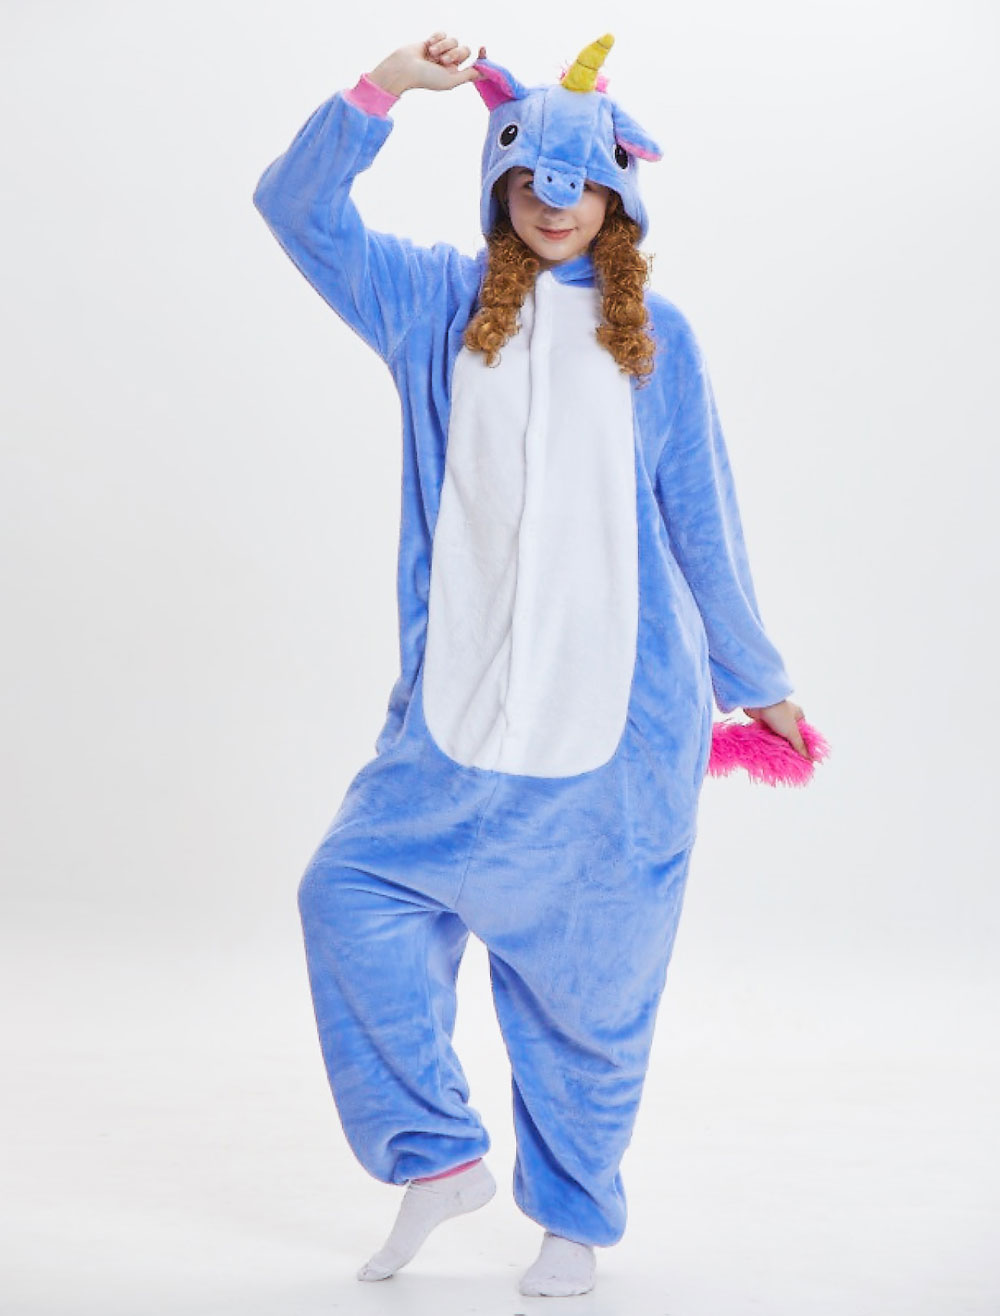 3a4349e22 Unicorn Kigurumi Pajamas Onesie Flannel Blue Long Jumpsuits Adults Unisex Animal  Sleepwear Halloween-No. 1. 30%OFF. Color:Blue